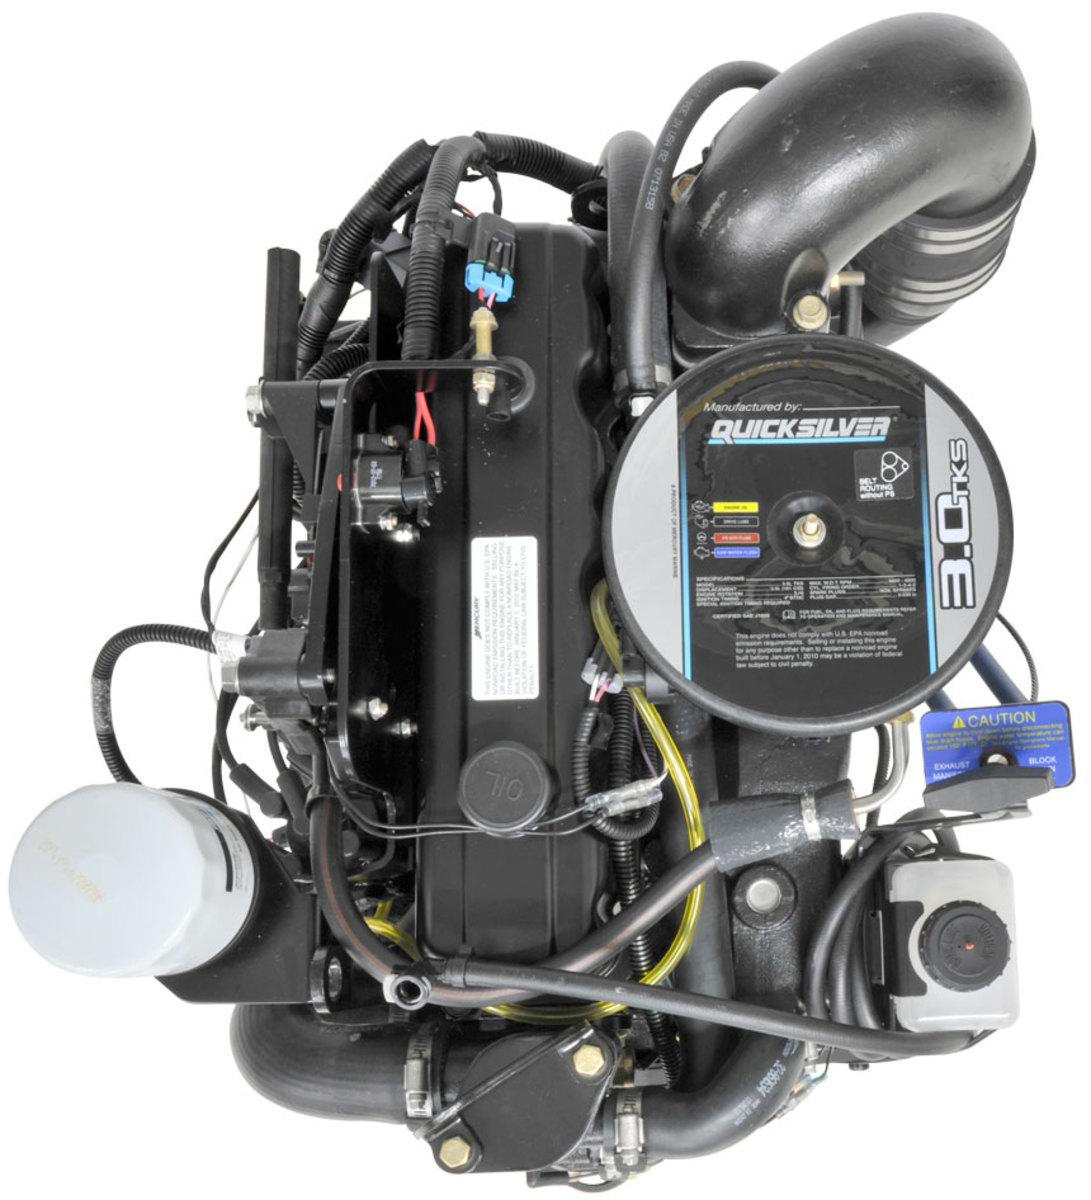 Quicksilver Engines - The Best Time to Repower Classic Boats